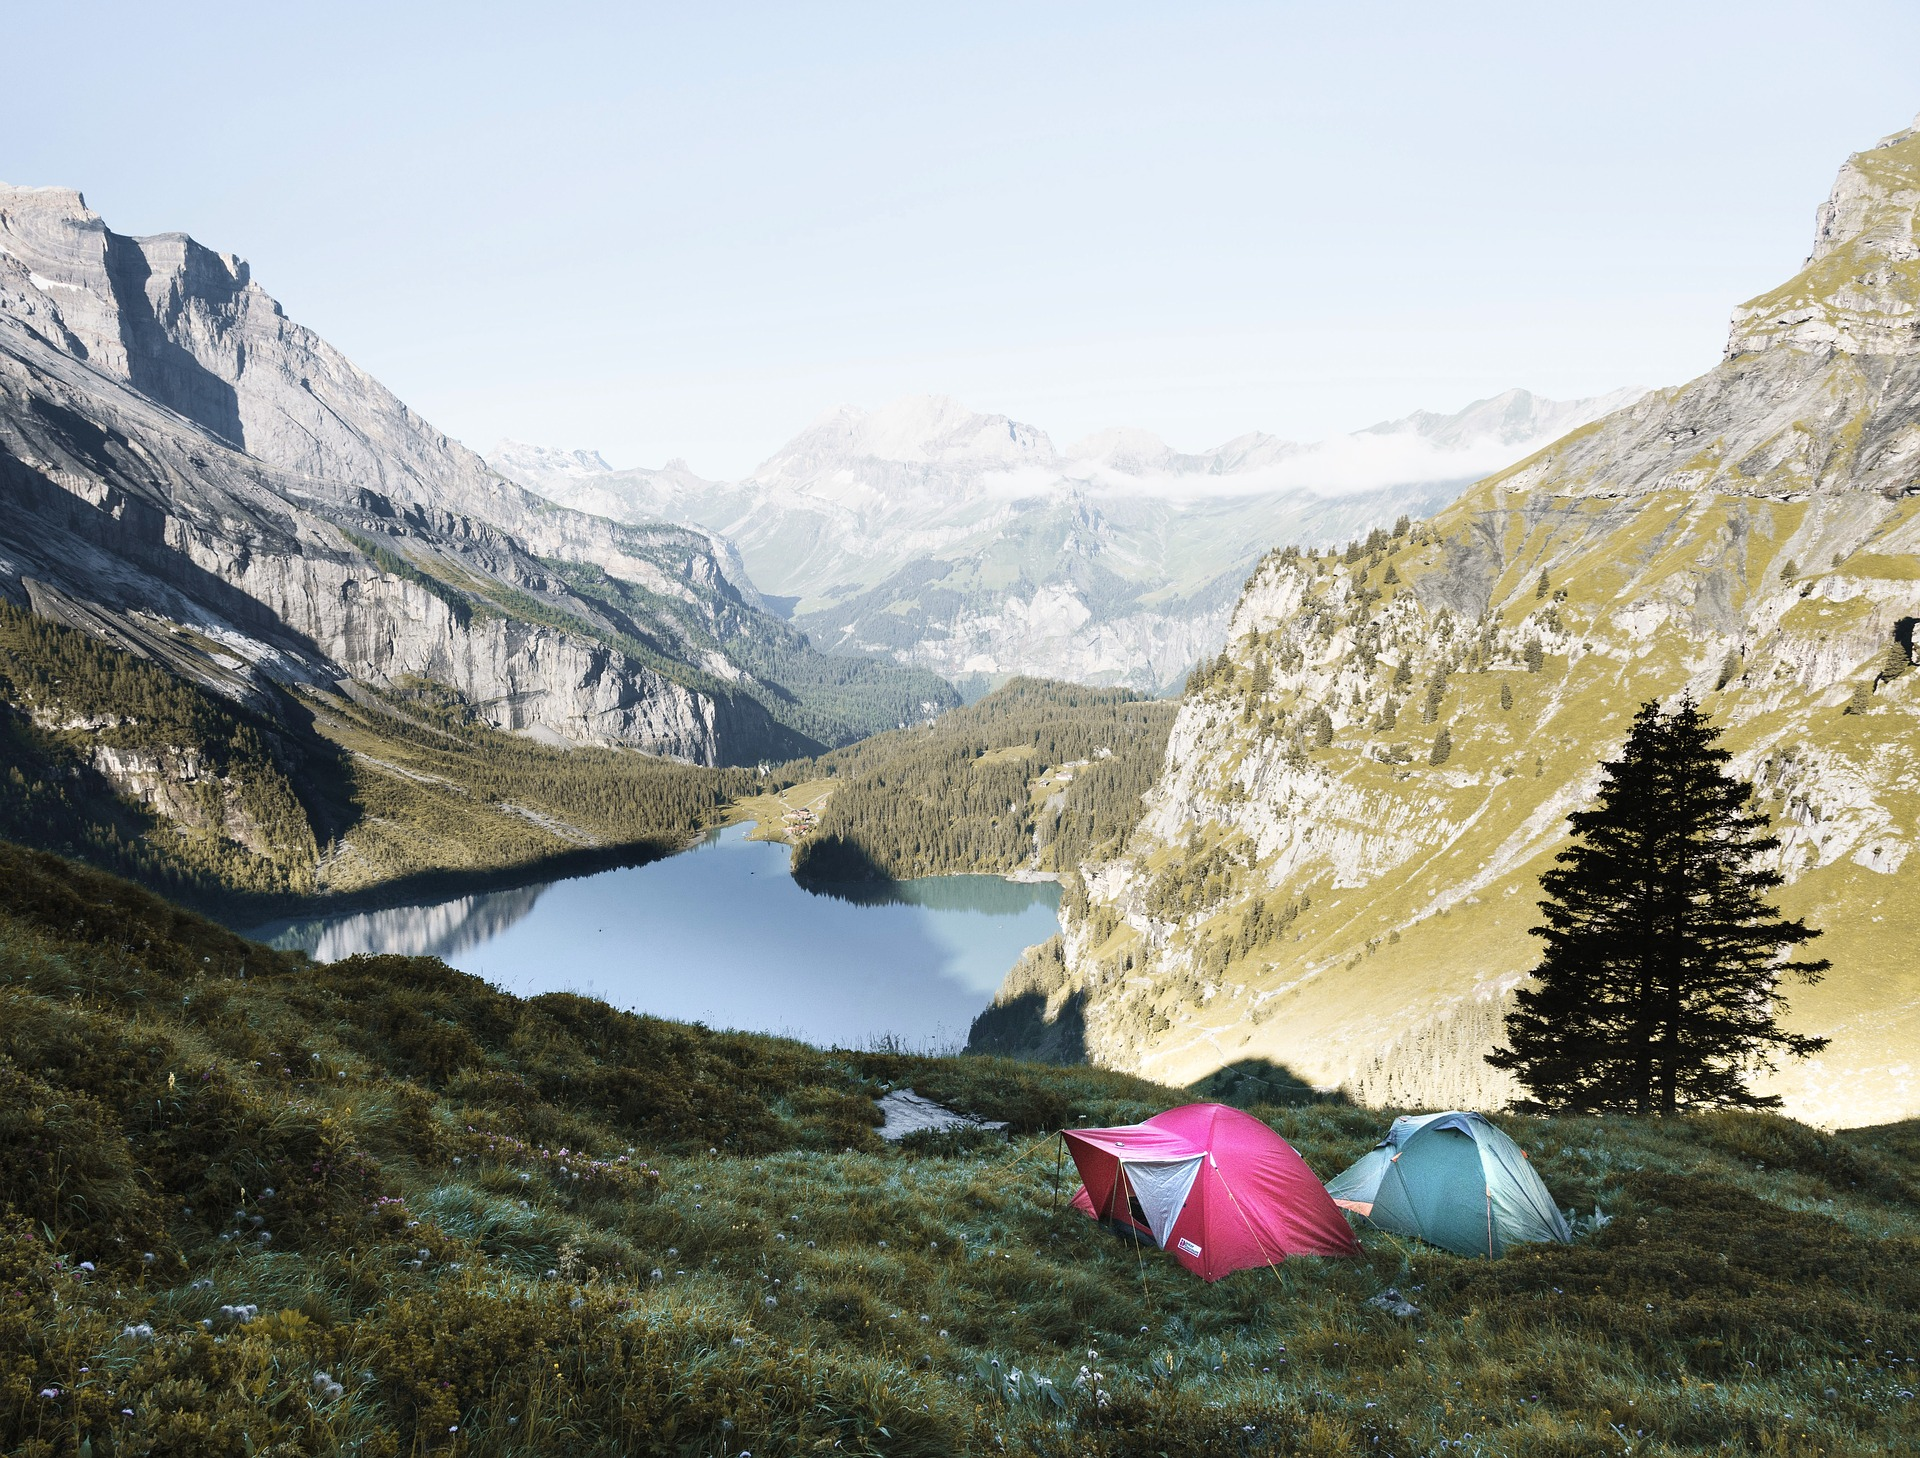 Camping equipement road trip paysage montagne